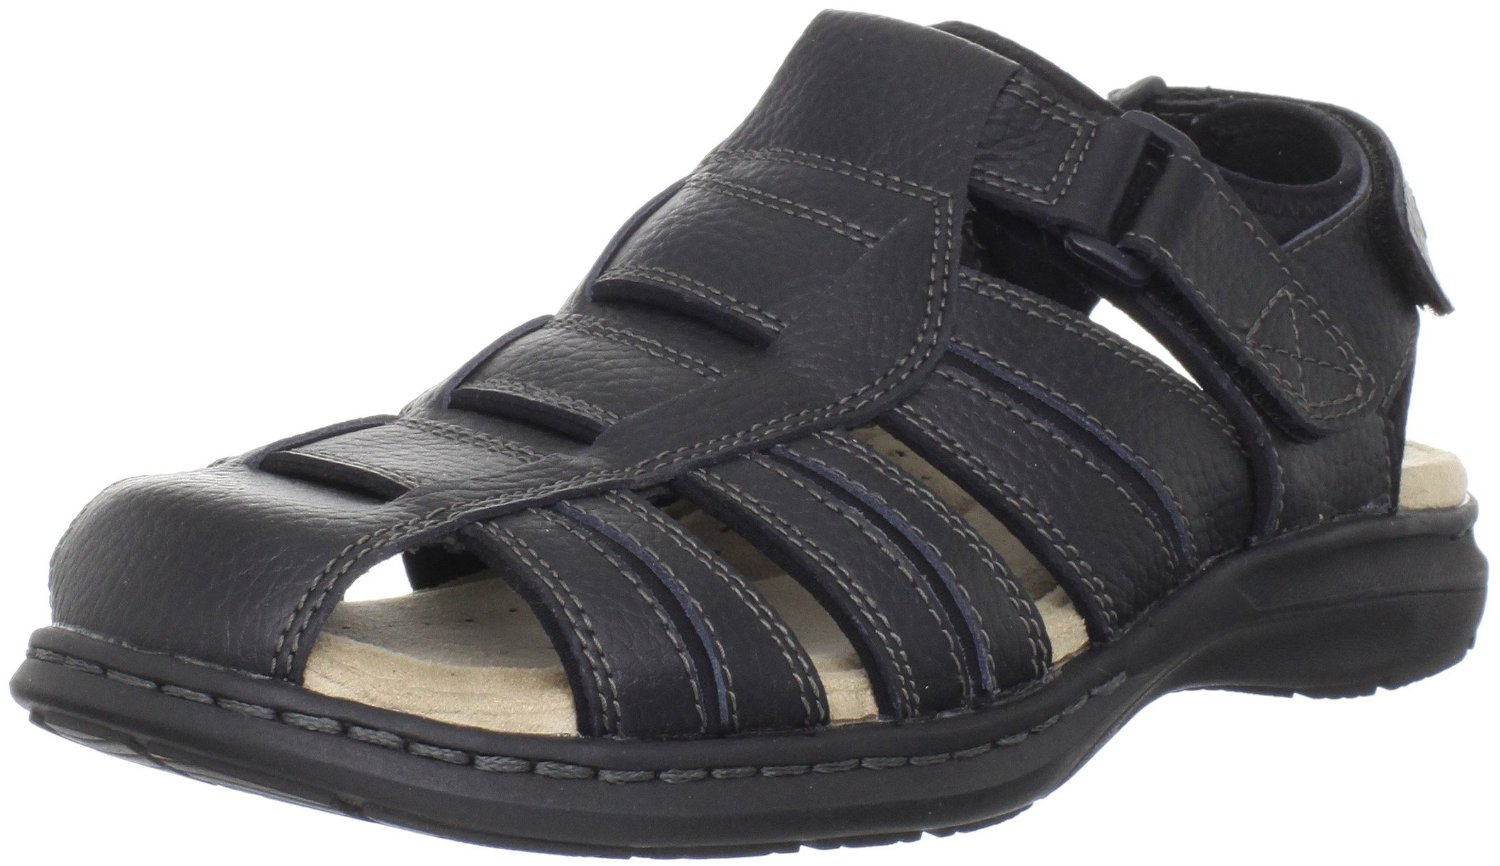 Dockers Mens Fulton Fisherman Sandal In Black For Men Lyst